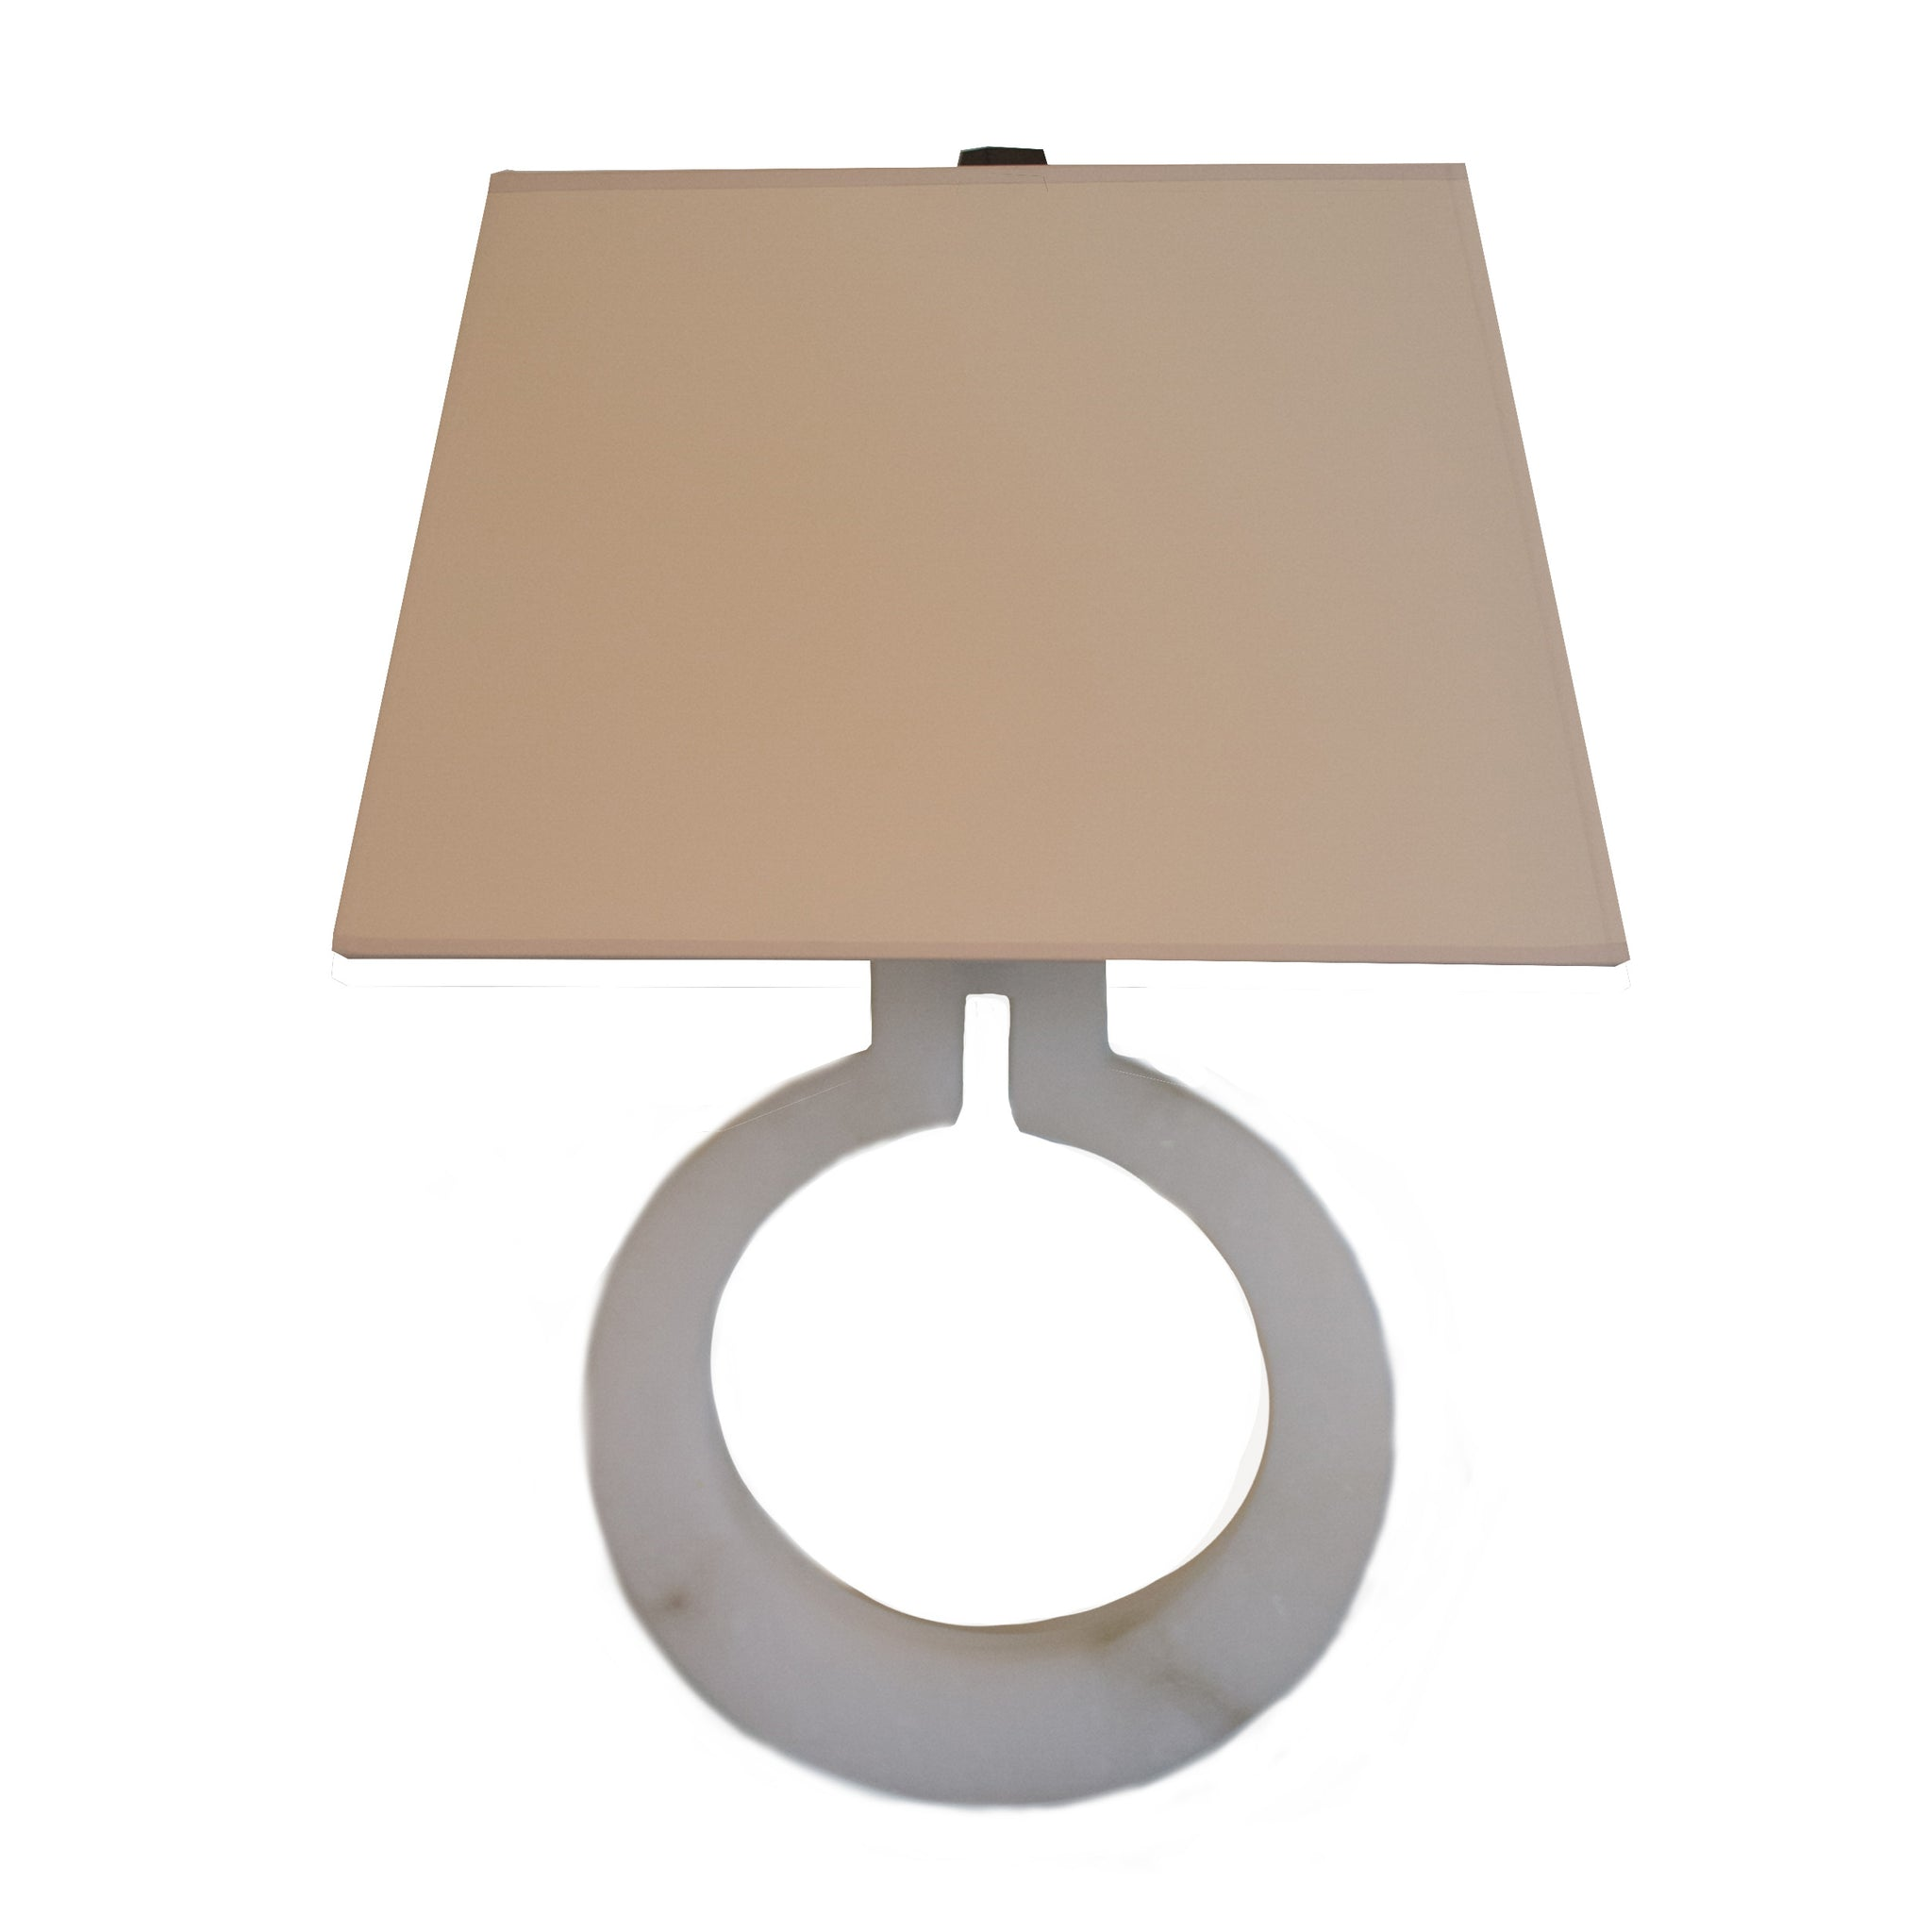 Ring Form Large Wall Sconce in Alabaster